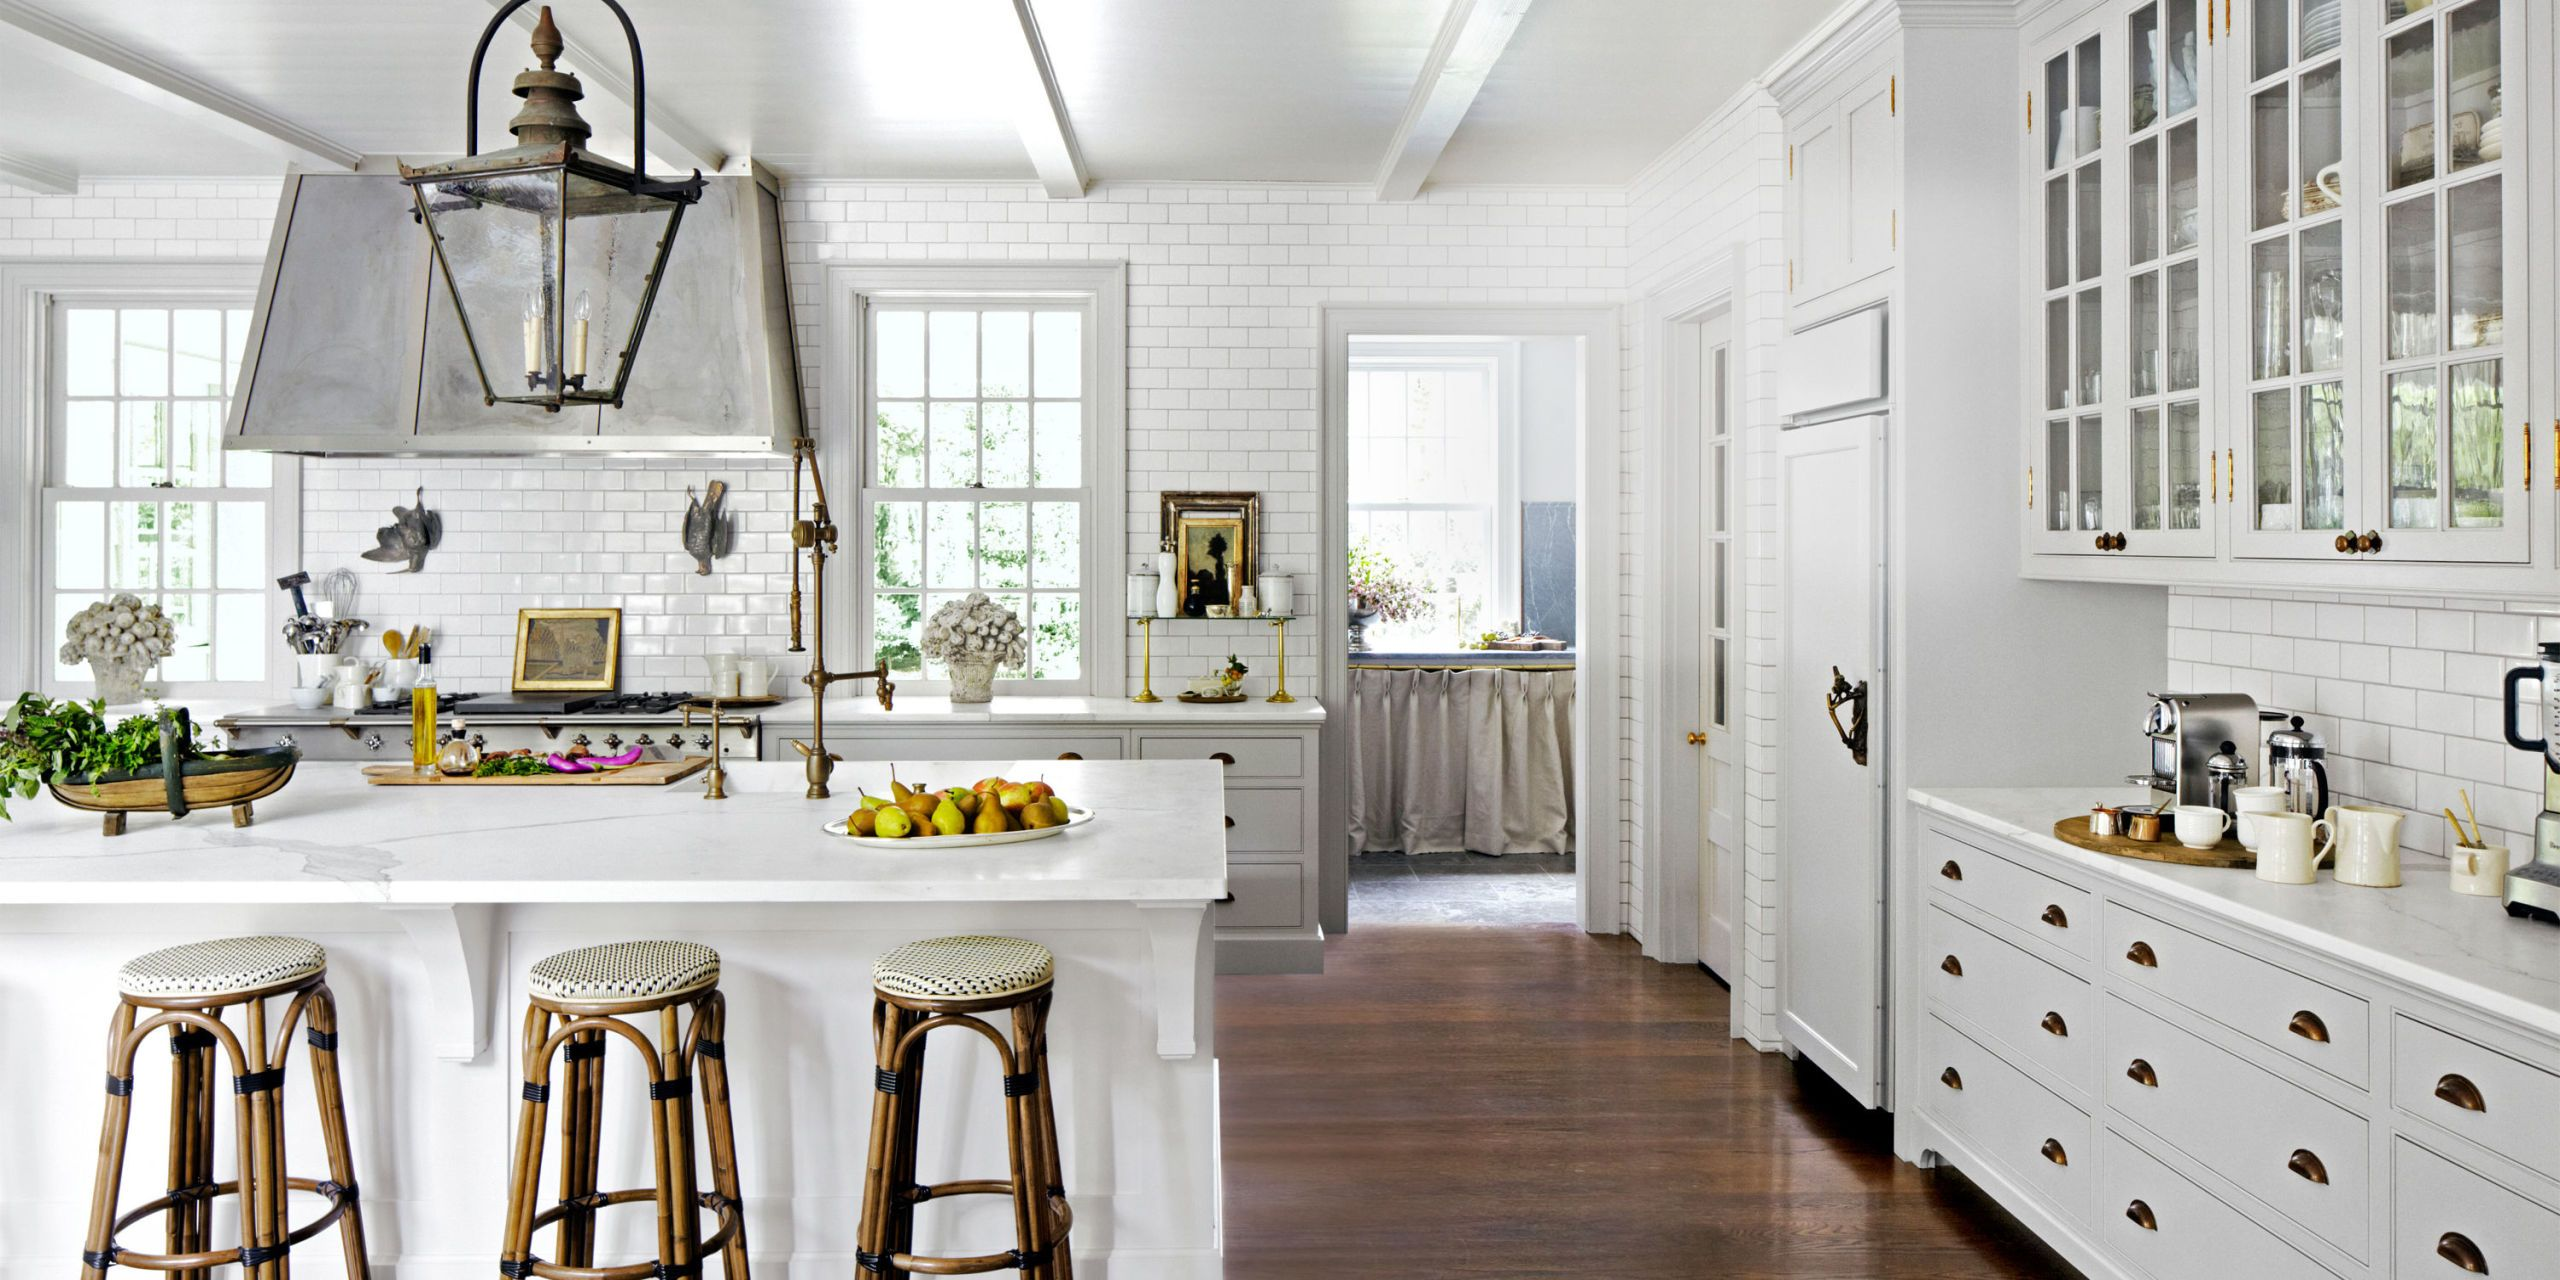 You Canu0027t Go Wrong With White In The Kitchen, So Sit Back And Let These  Fabulous Ideas And Pictures Inspire You To Take Your Kitchen From Drab To  Dazzling.